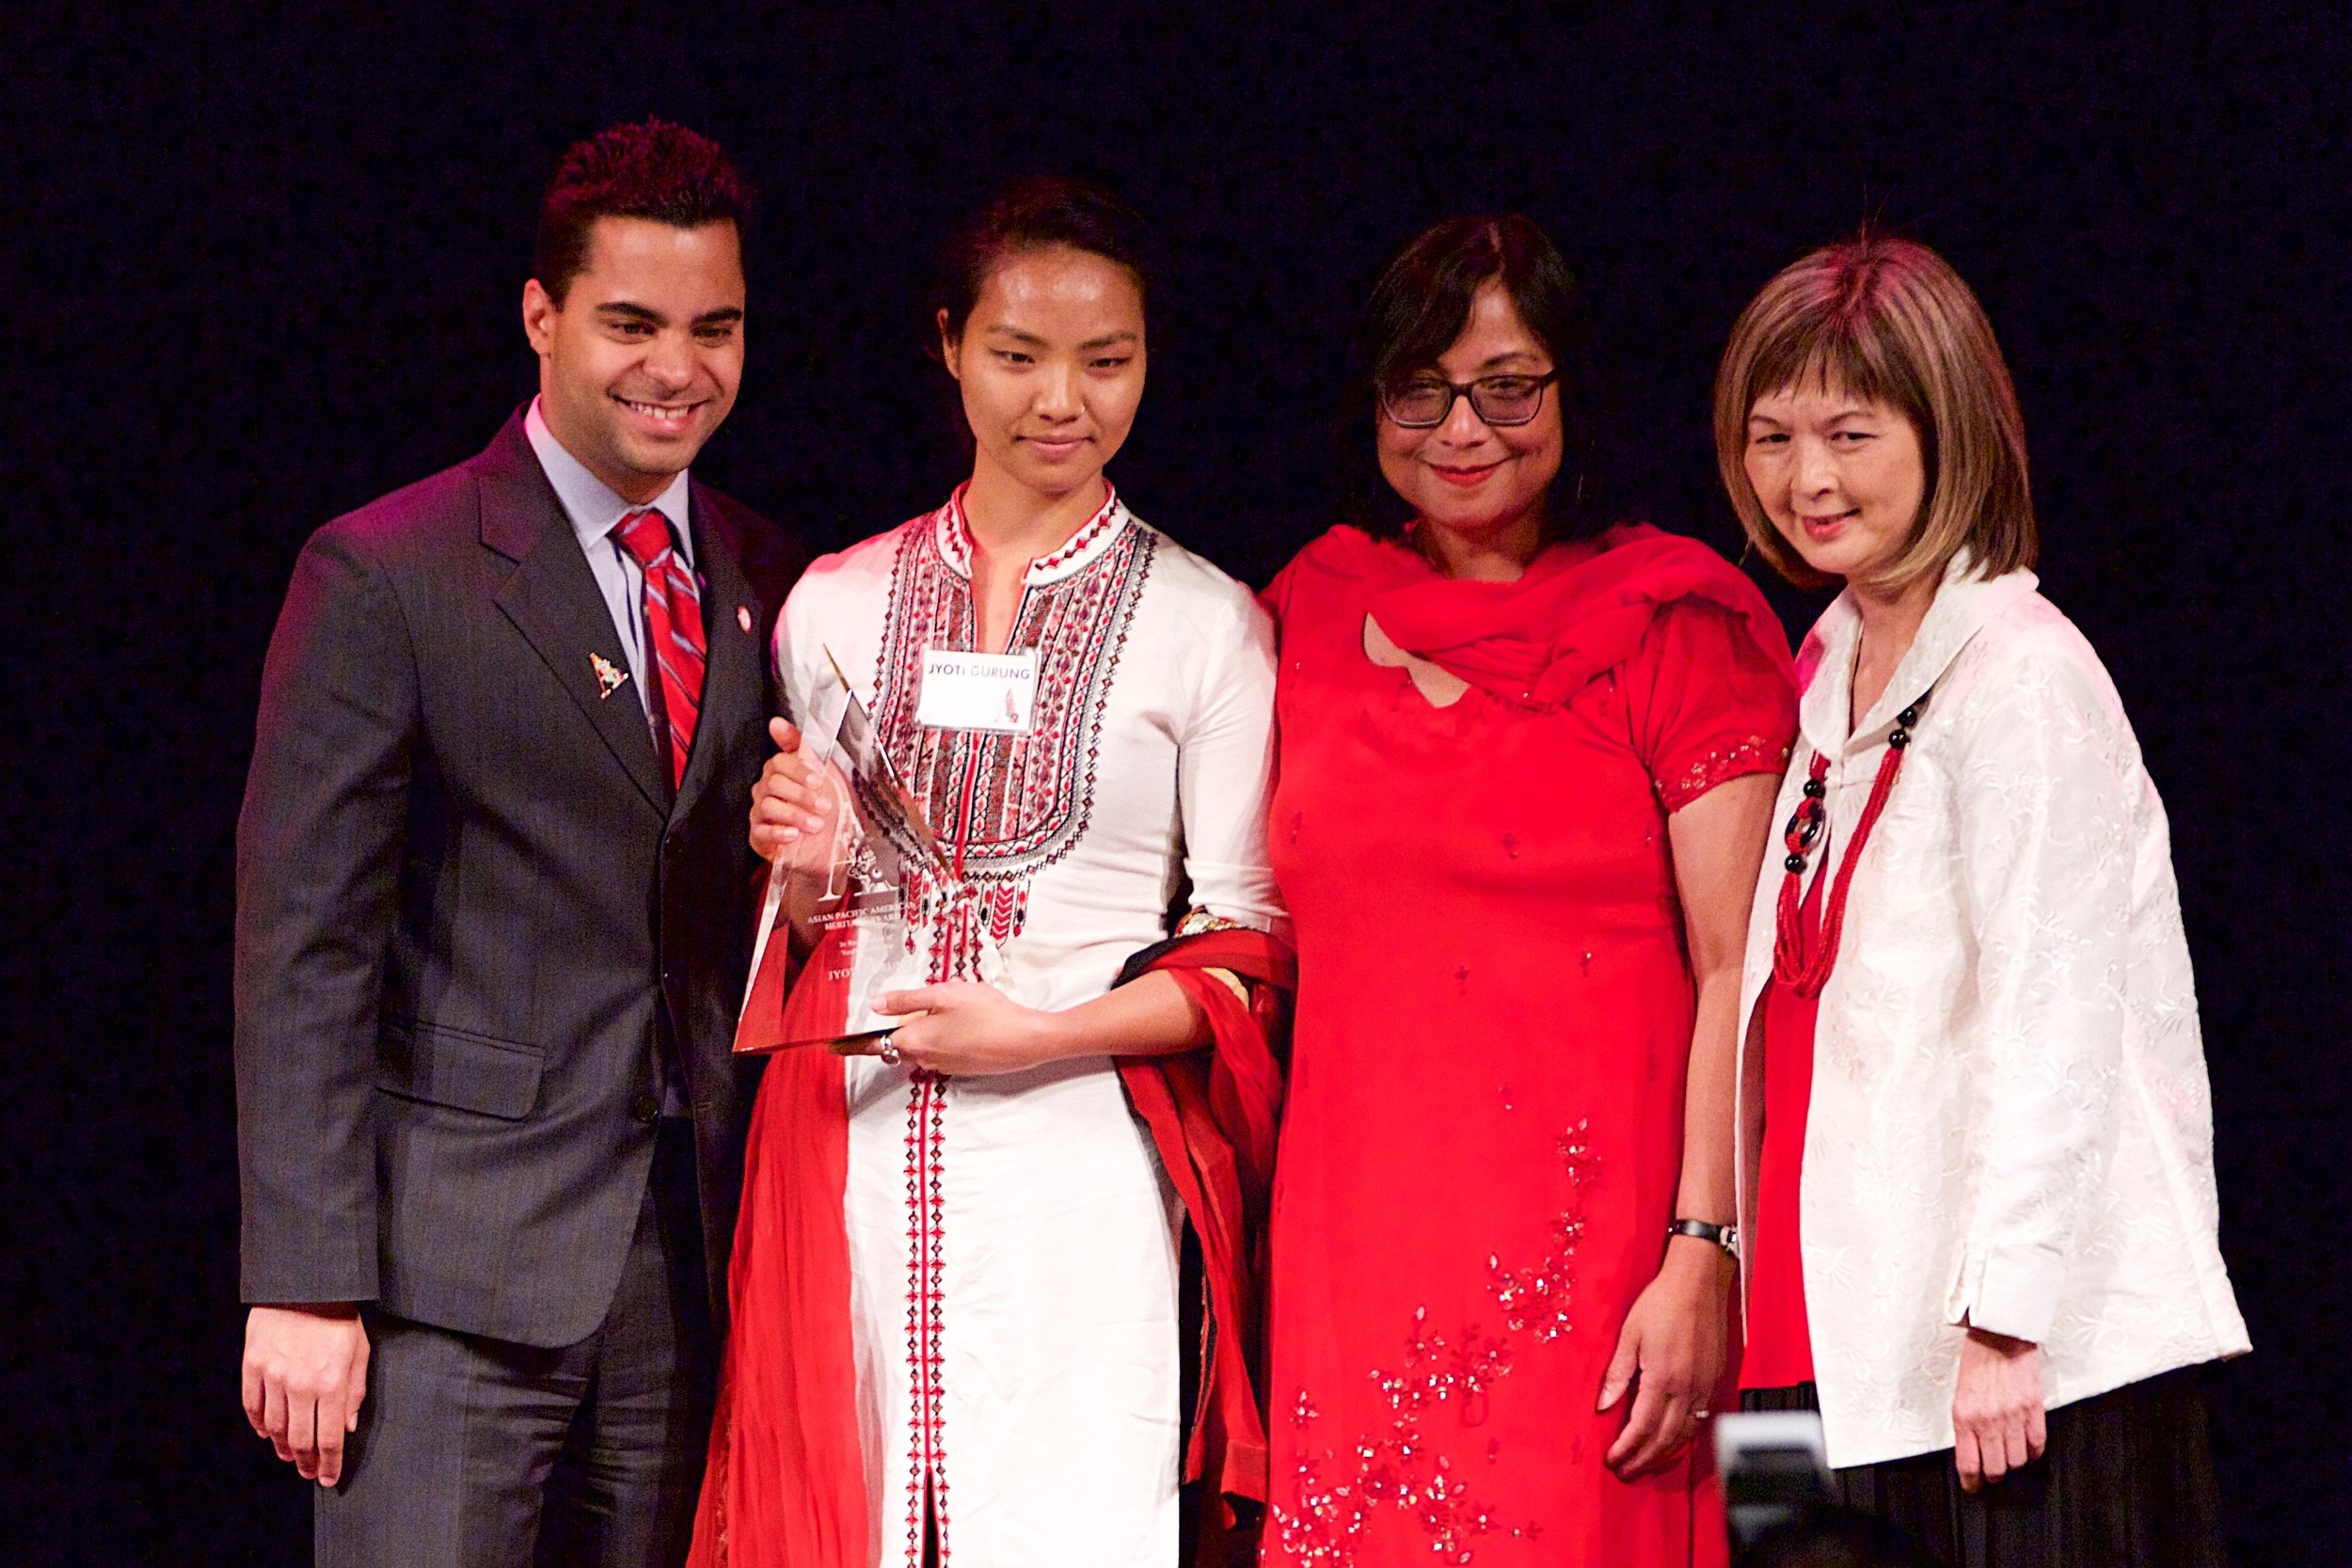 jyoti with award stage.jpg